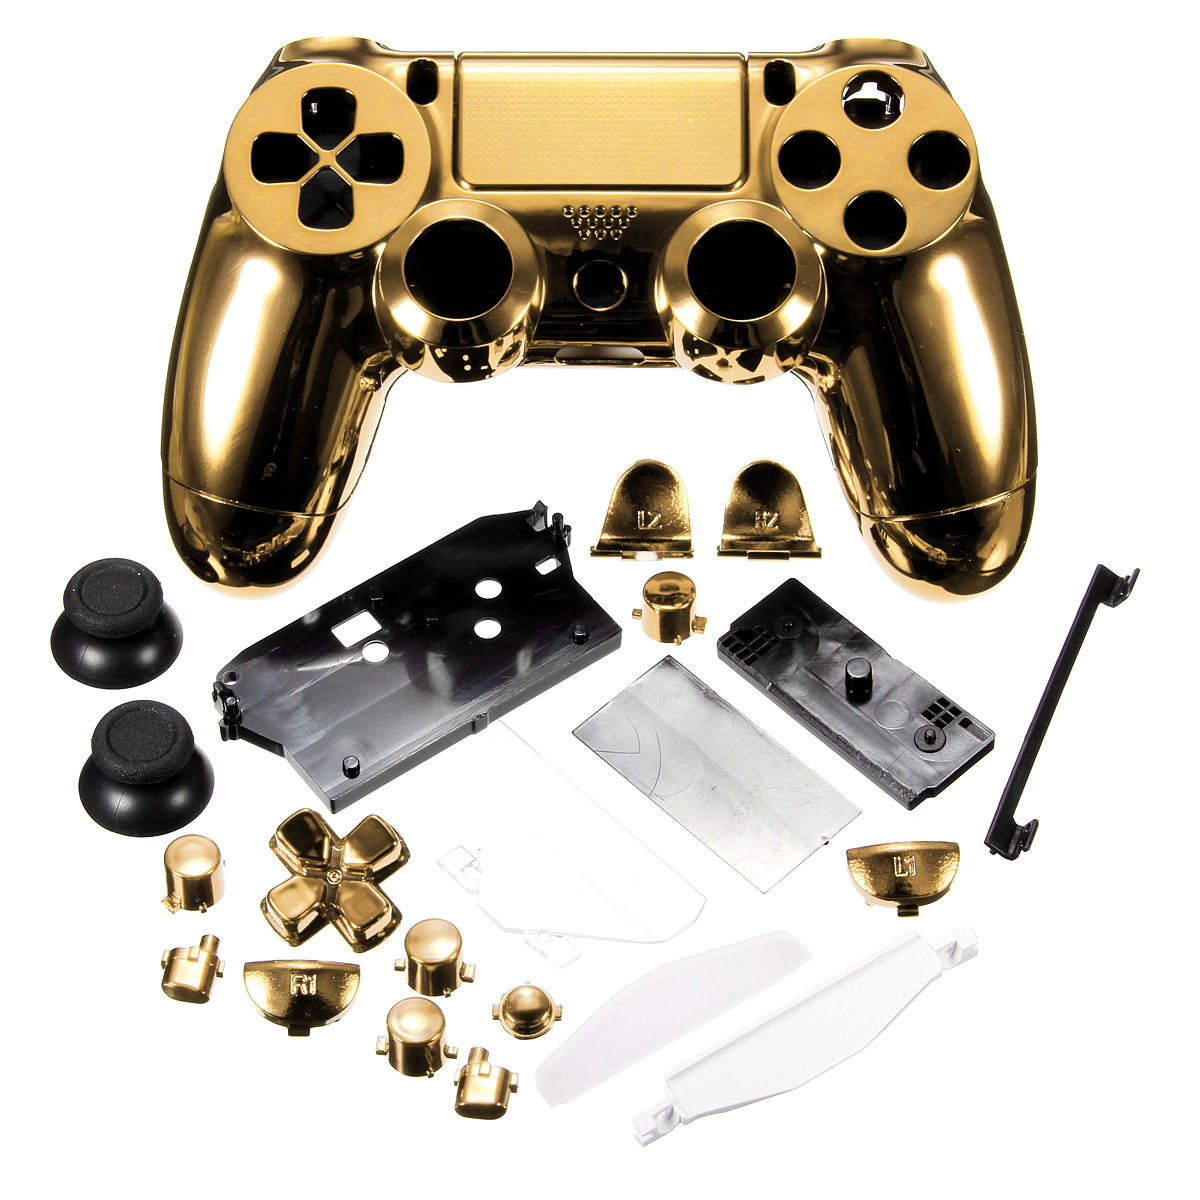 M.way Chrome Plating Housing Shell Case Full Mod Kits for Playstation 4 Controller Dual... by